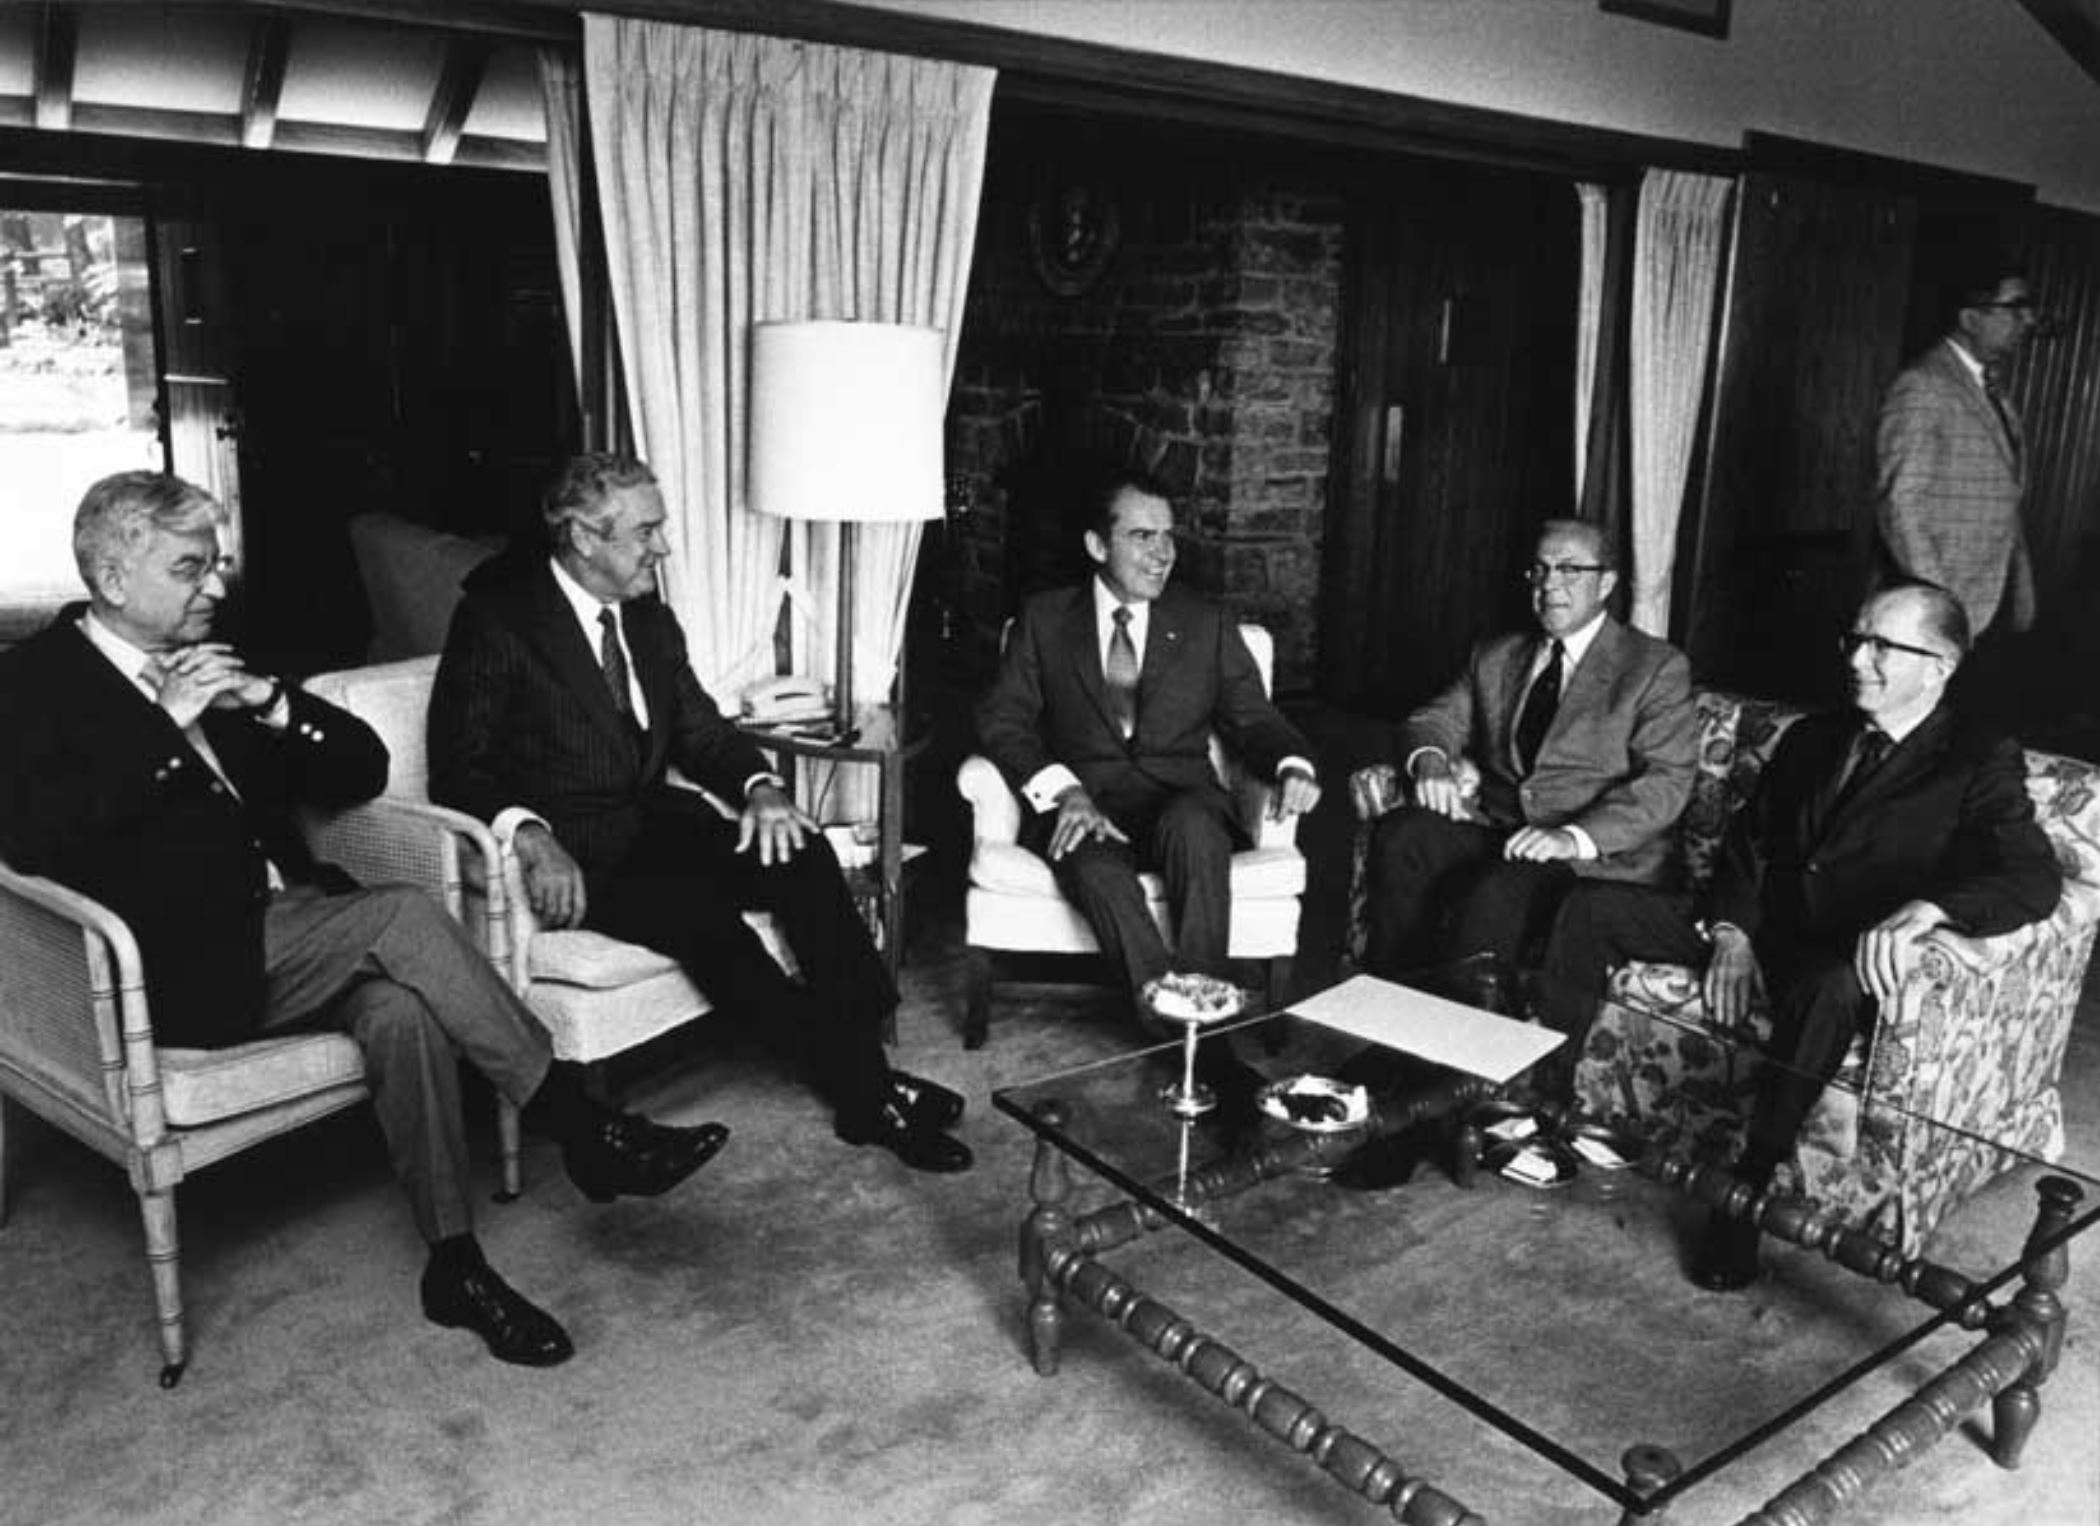 On Aug. 13-15, 1971, President Nixon and his top economic advisors met at Camp David to plot how to take America off the gold standard.